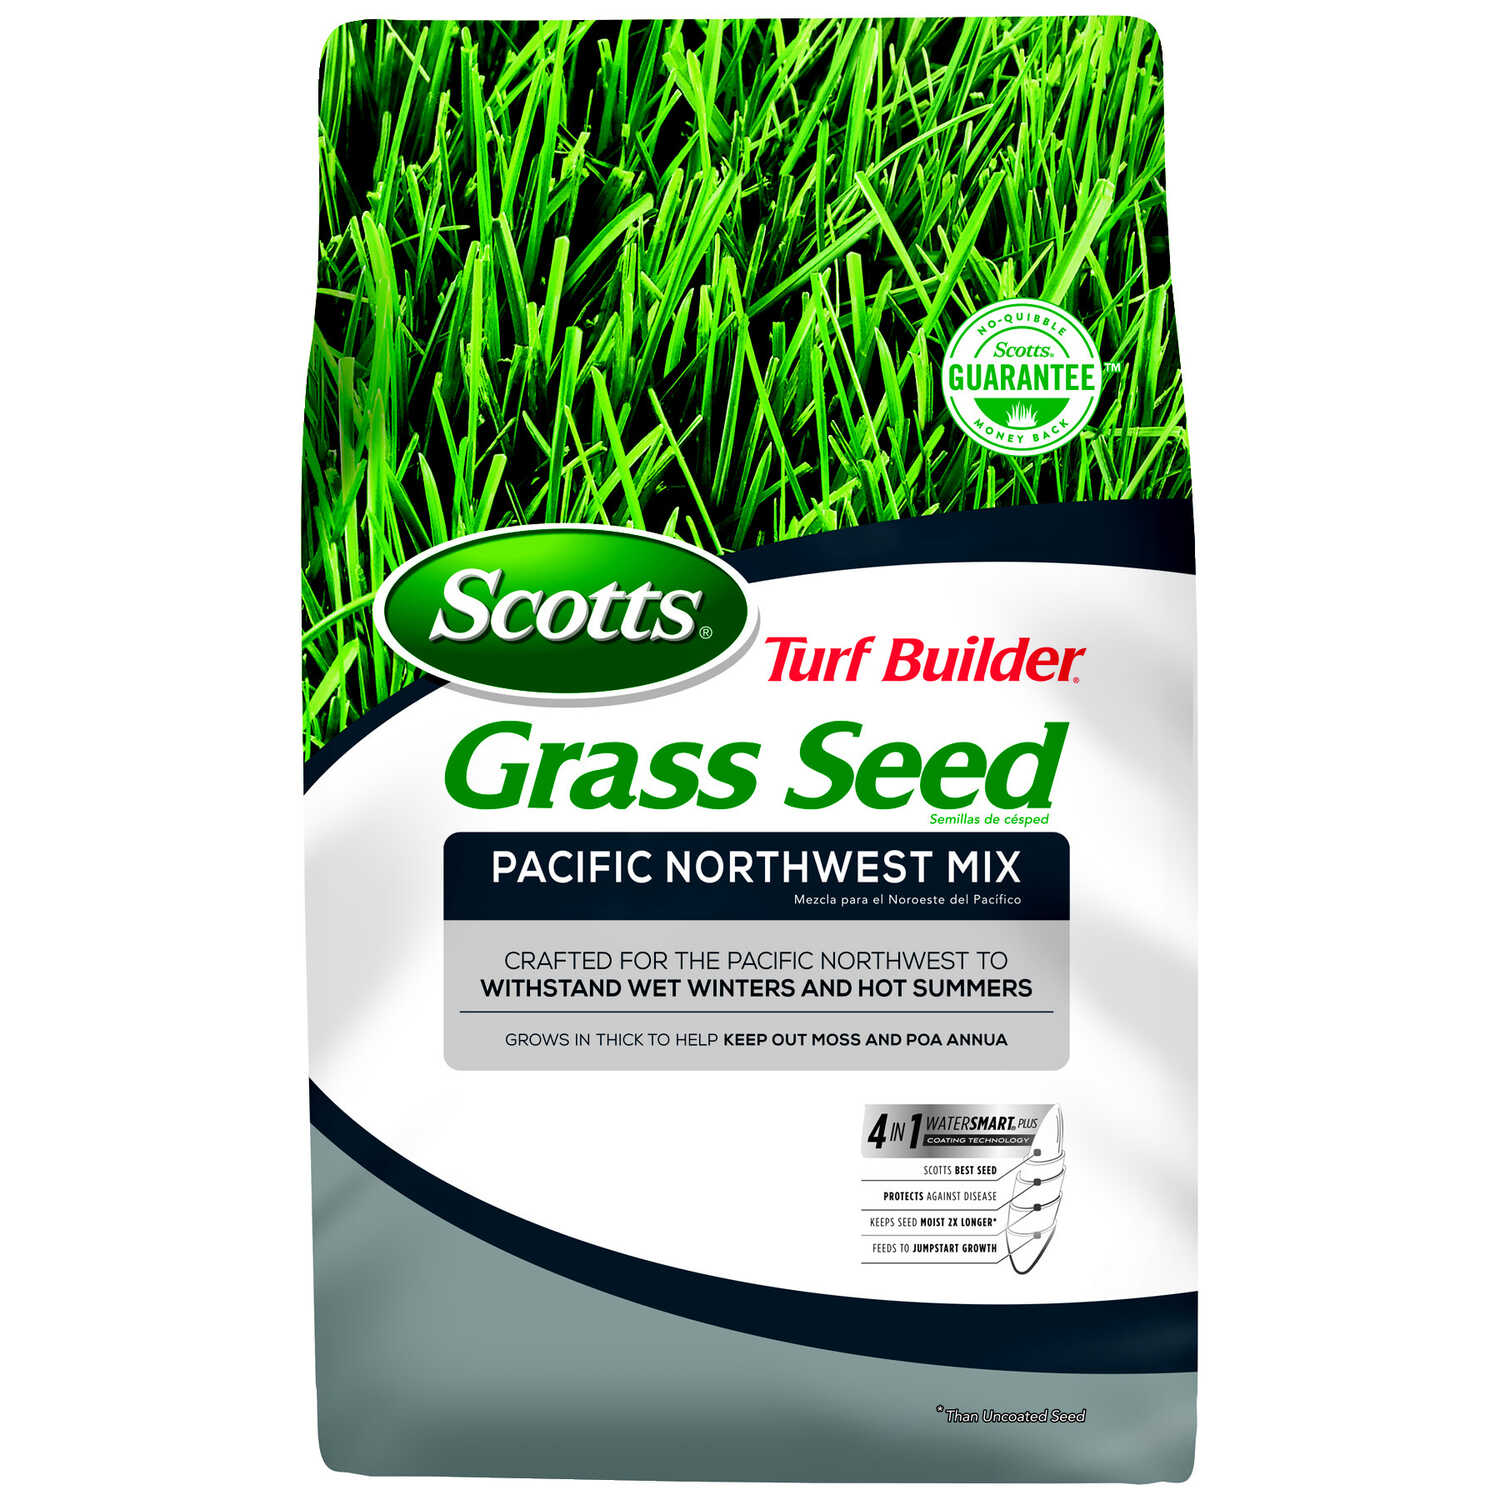 Scotts  Turf Builder  Pacific Northwest Mix  Grass Seed  3 lb.